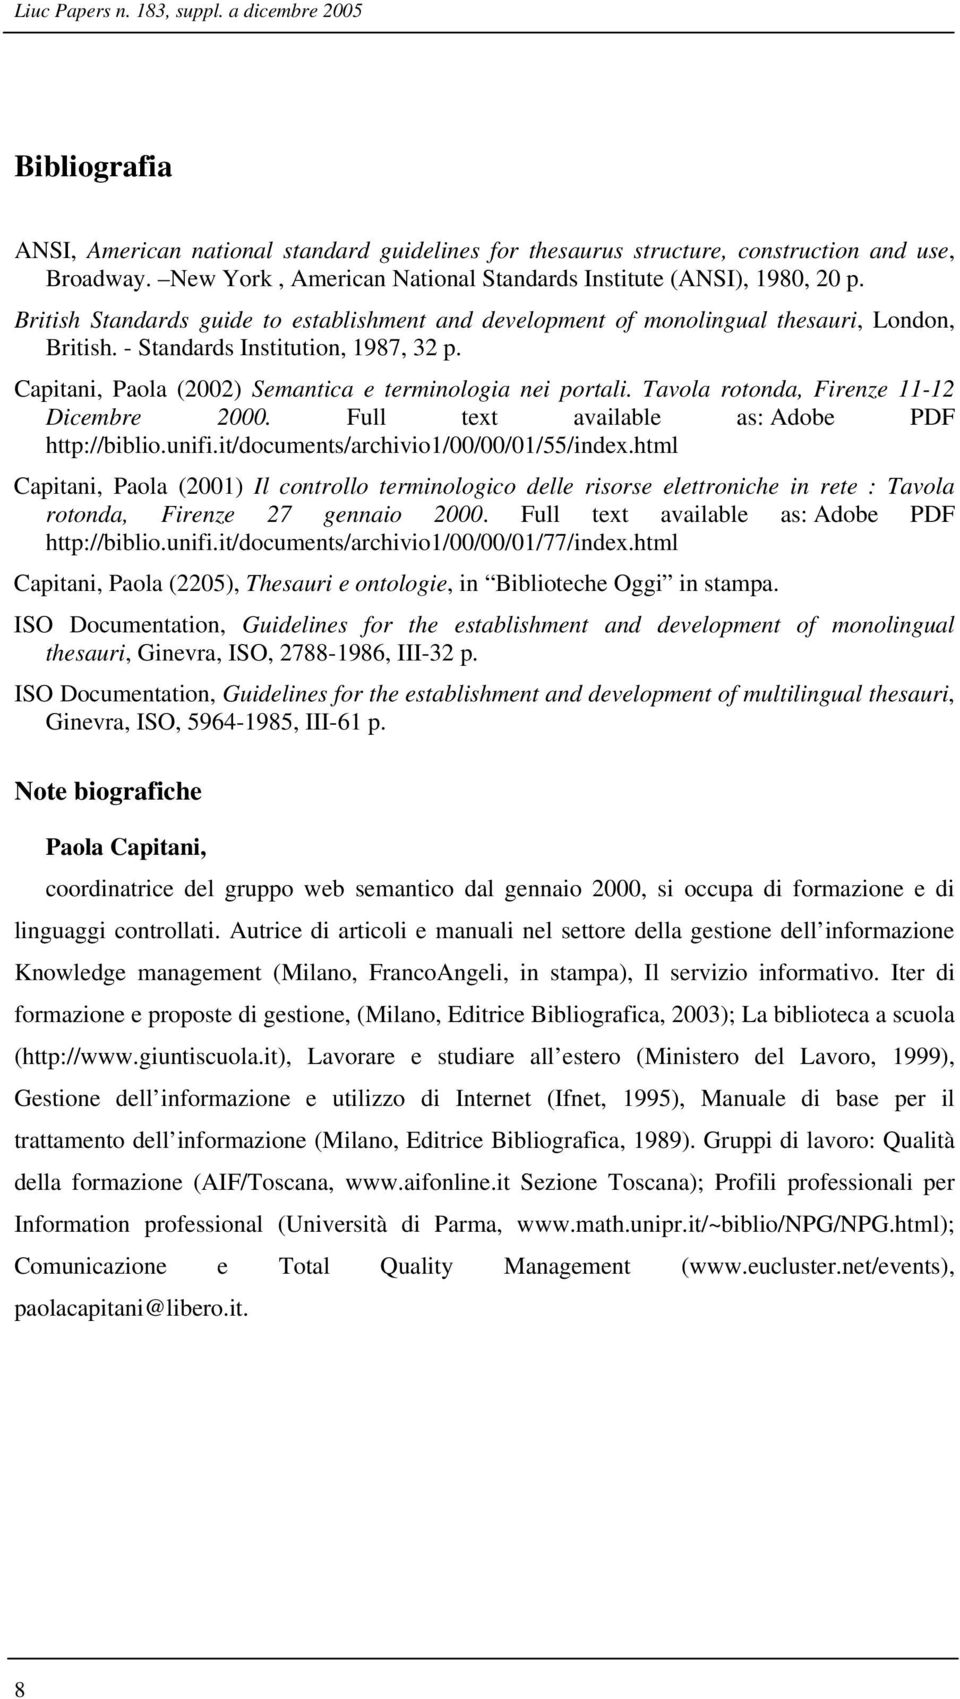 - Standards Institution, 1987, 32 p. Capitani, Paola (2002) Semantica e terminologia nei portali. Tavola rotonda, Firenze 11-12 Dicembre 2000. Full text available as: Adobe PDF http://biblio.unifi.